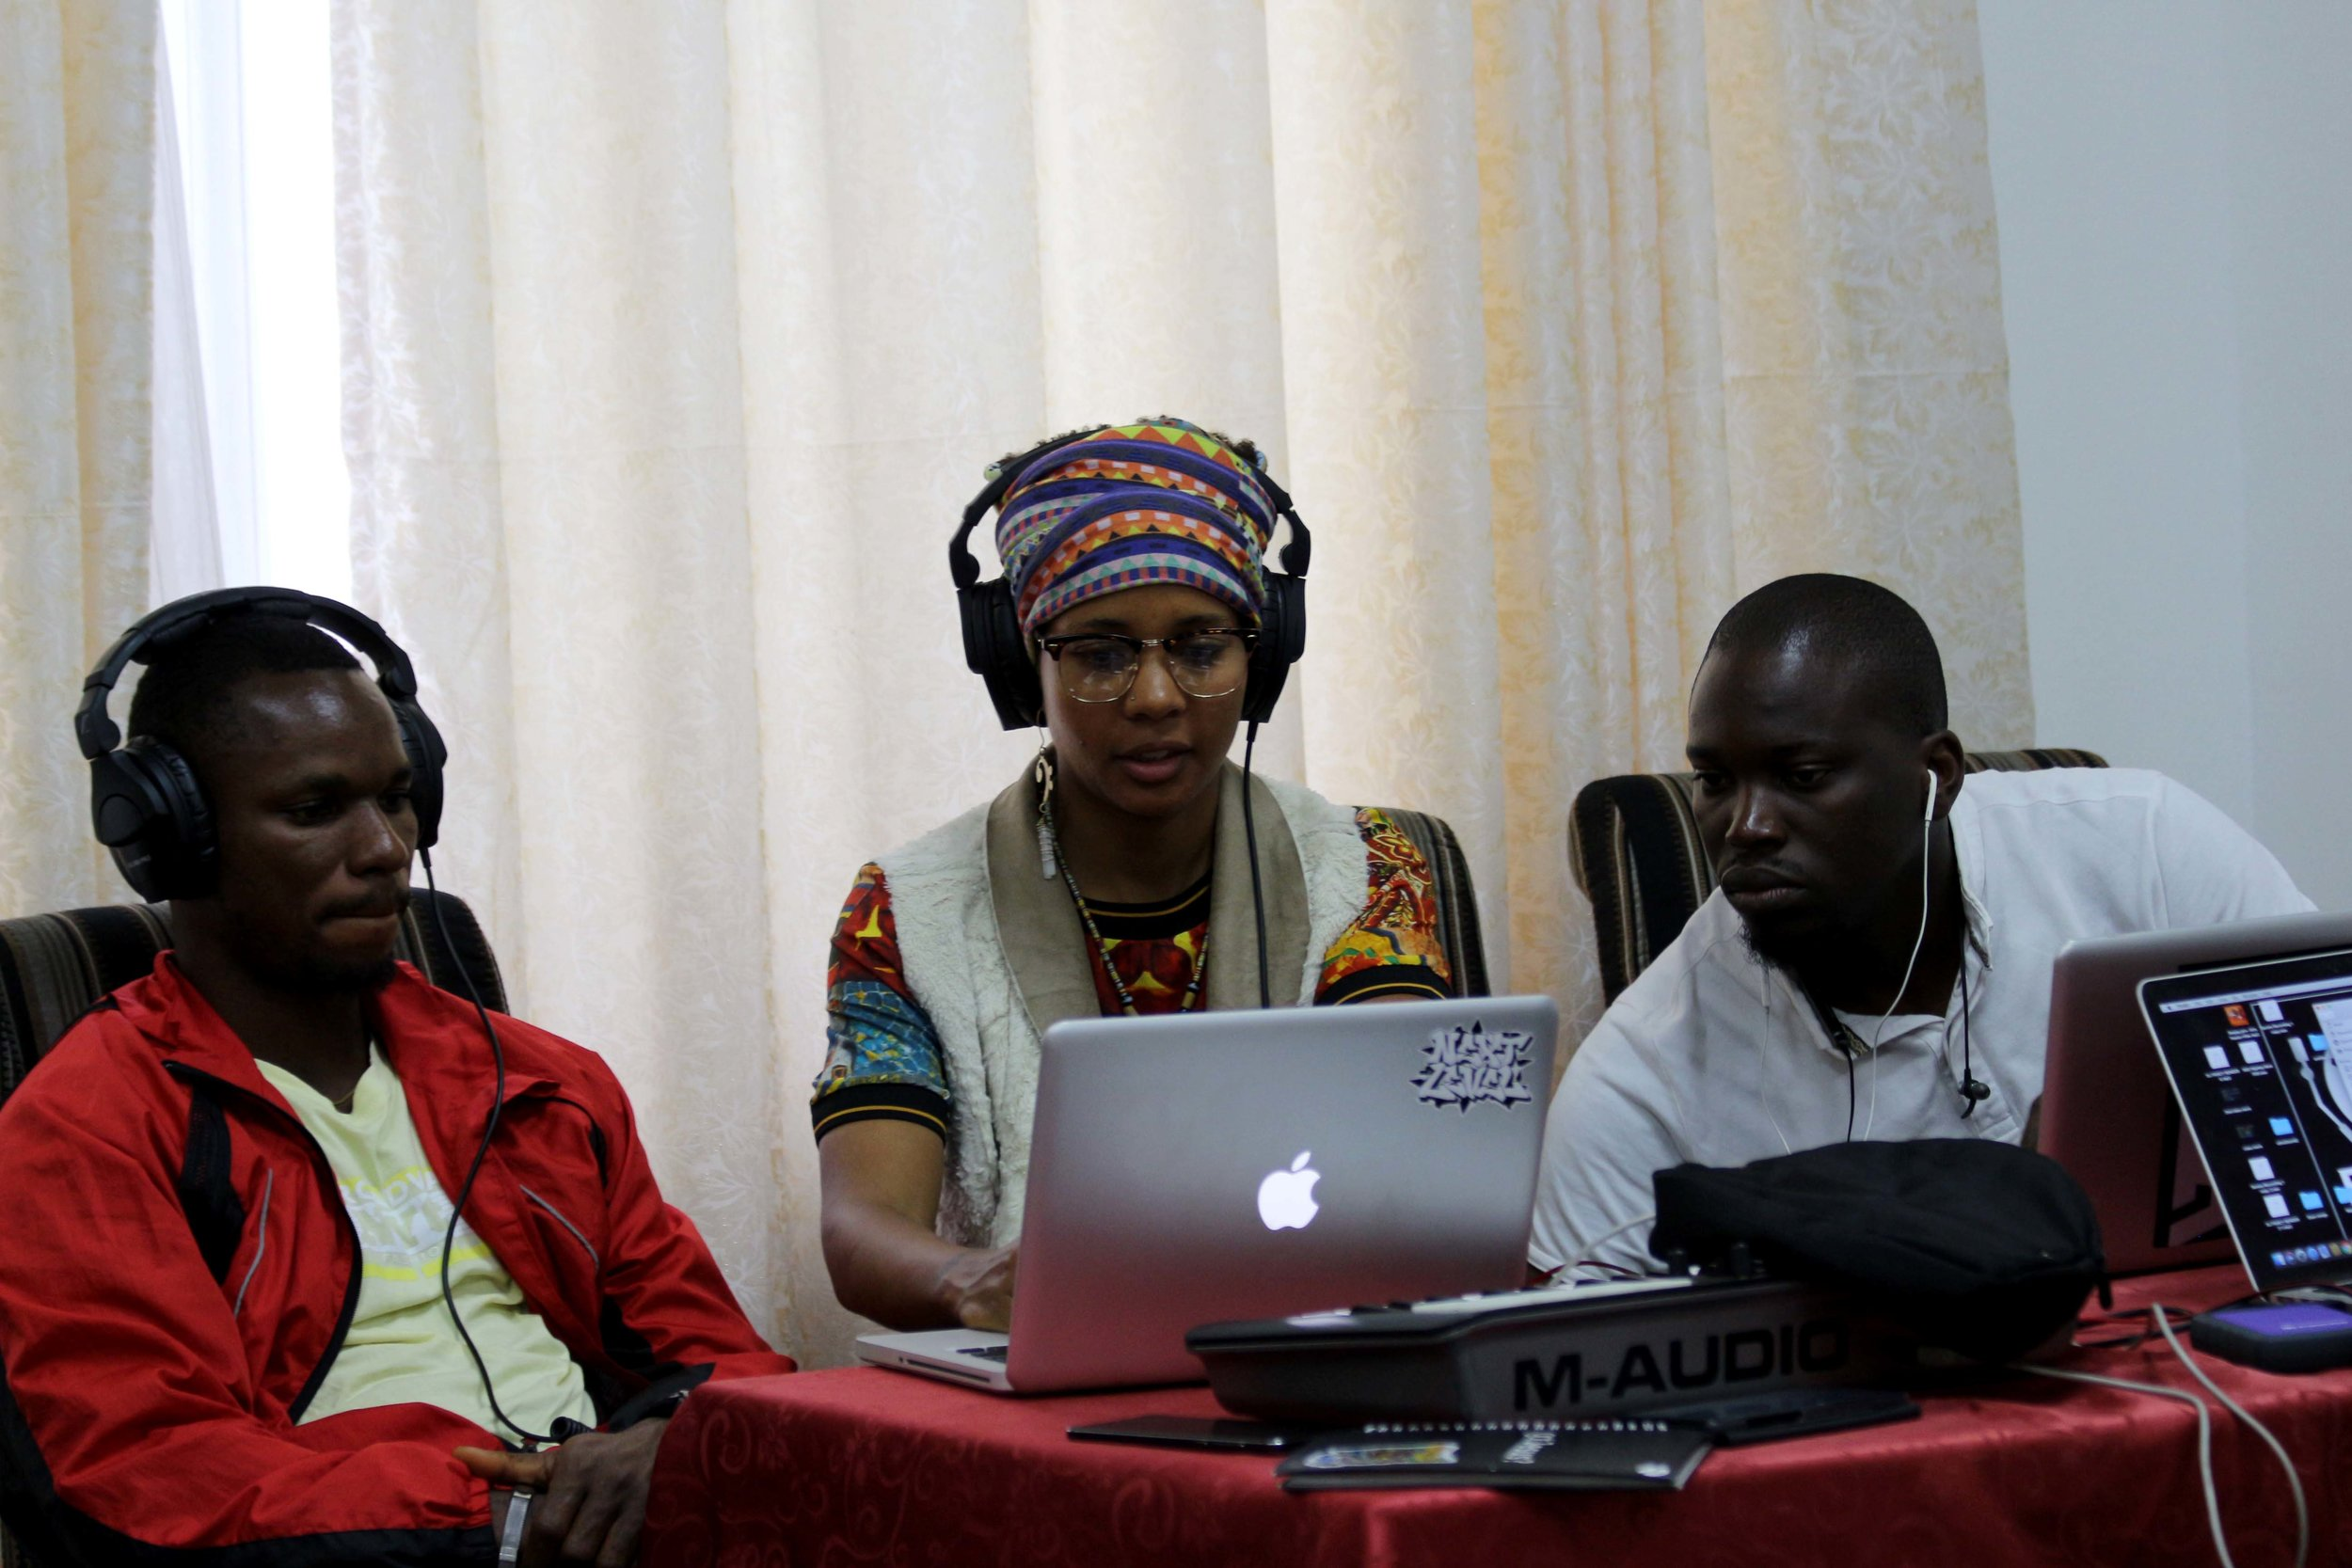 The Beatmakers at work at the  workshops beatmaking session, Asokoro, Abuja, Nigeria.jpg